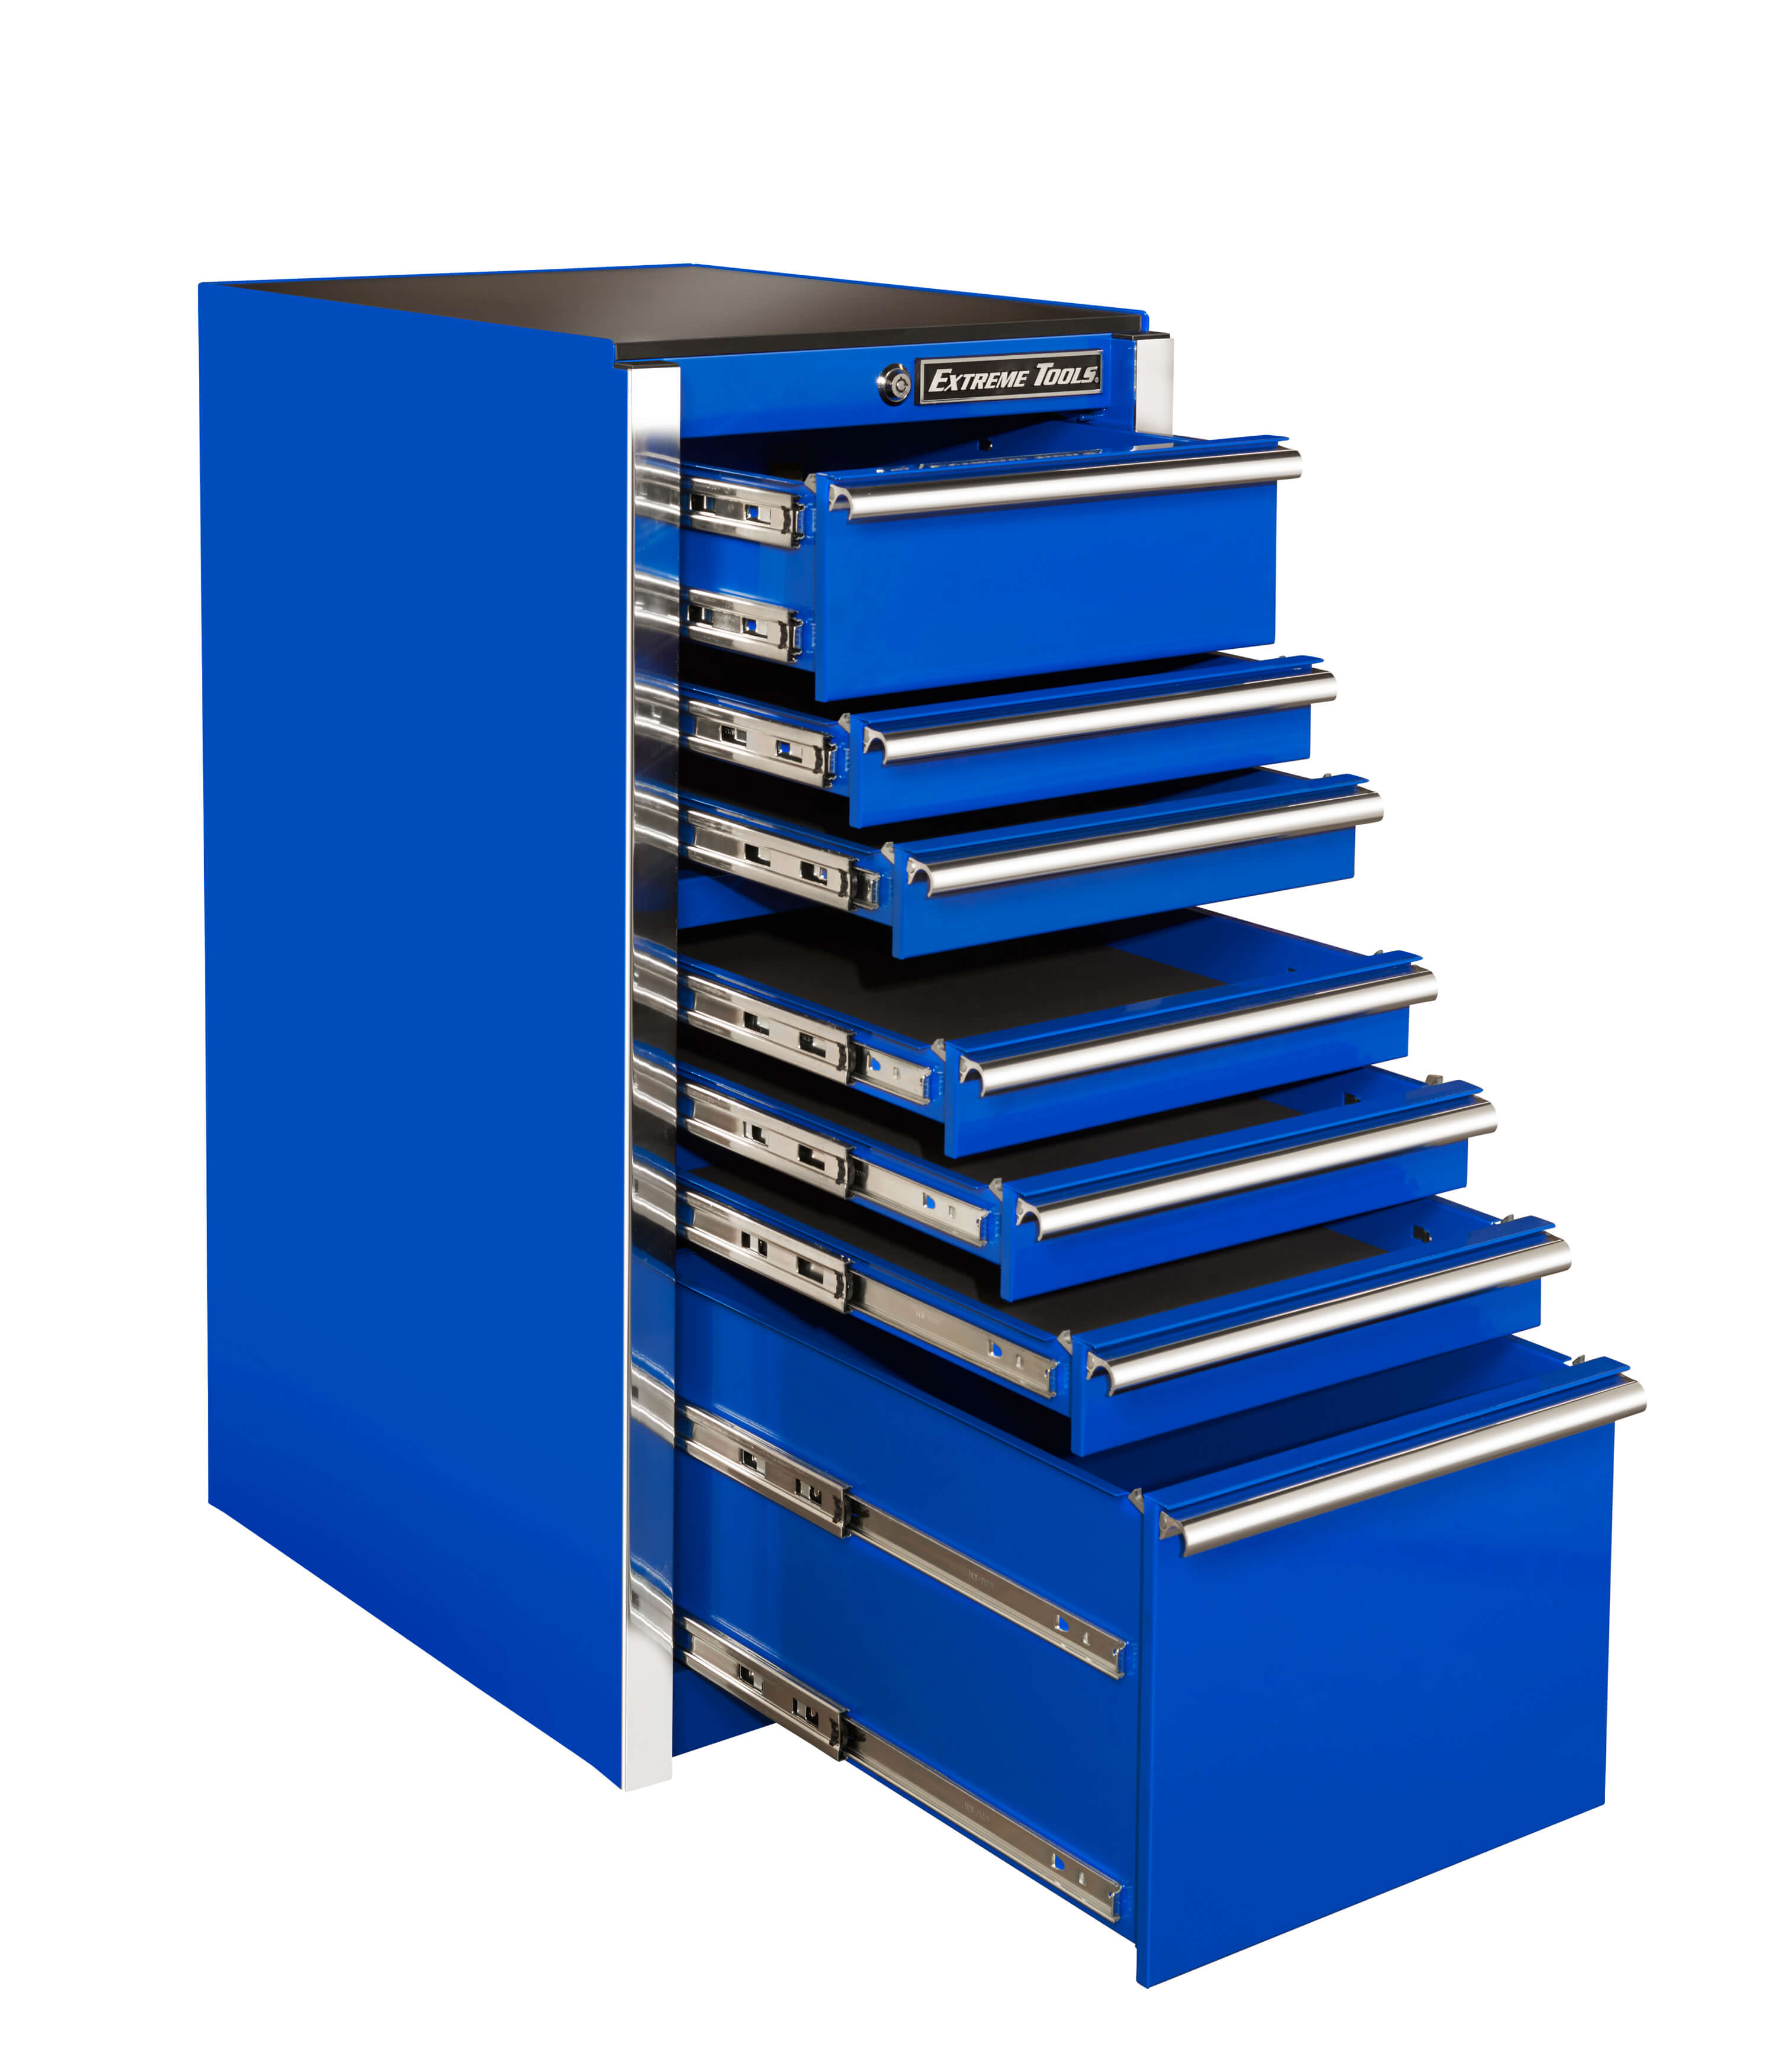 "Extreme Tools 19"" 7-Drawer Side Box"